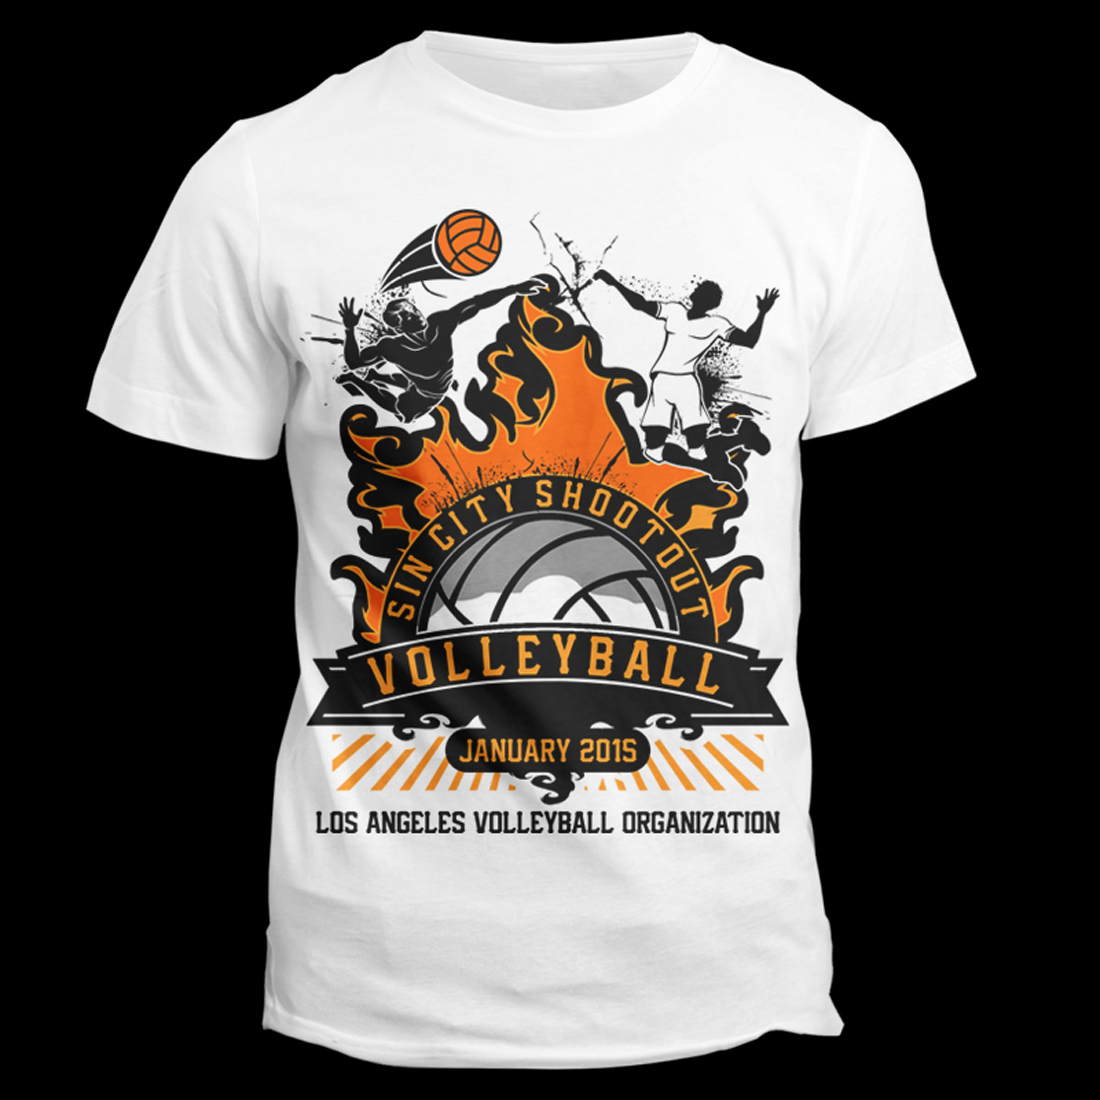 Modern Bold Festival T Shirt Design For Los Angeles Volleyball